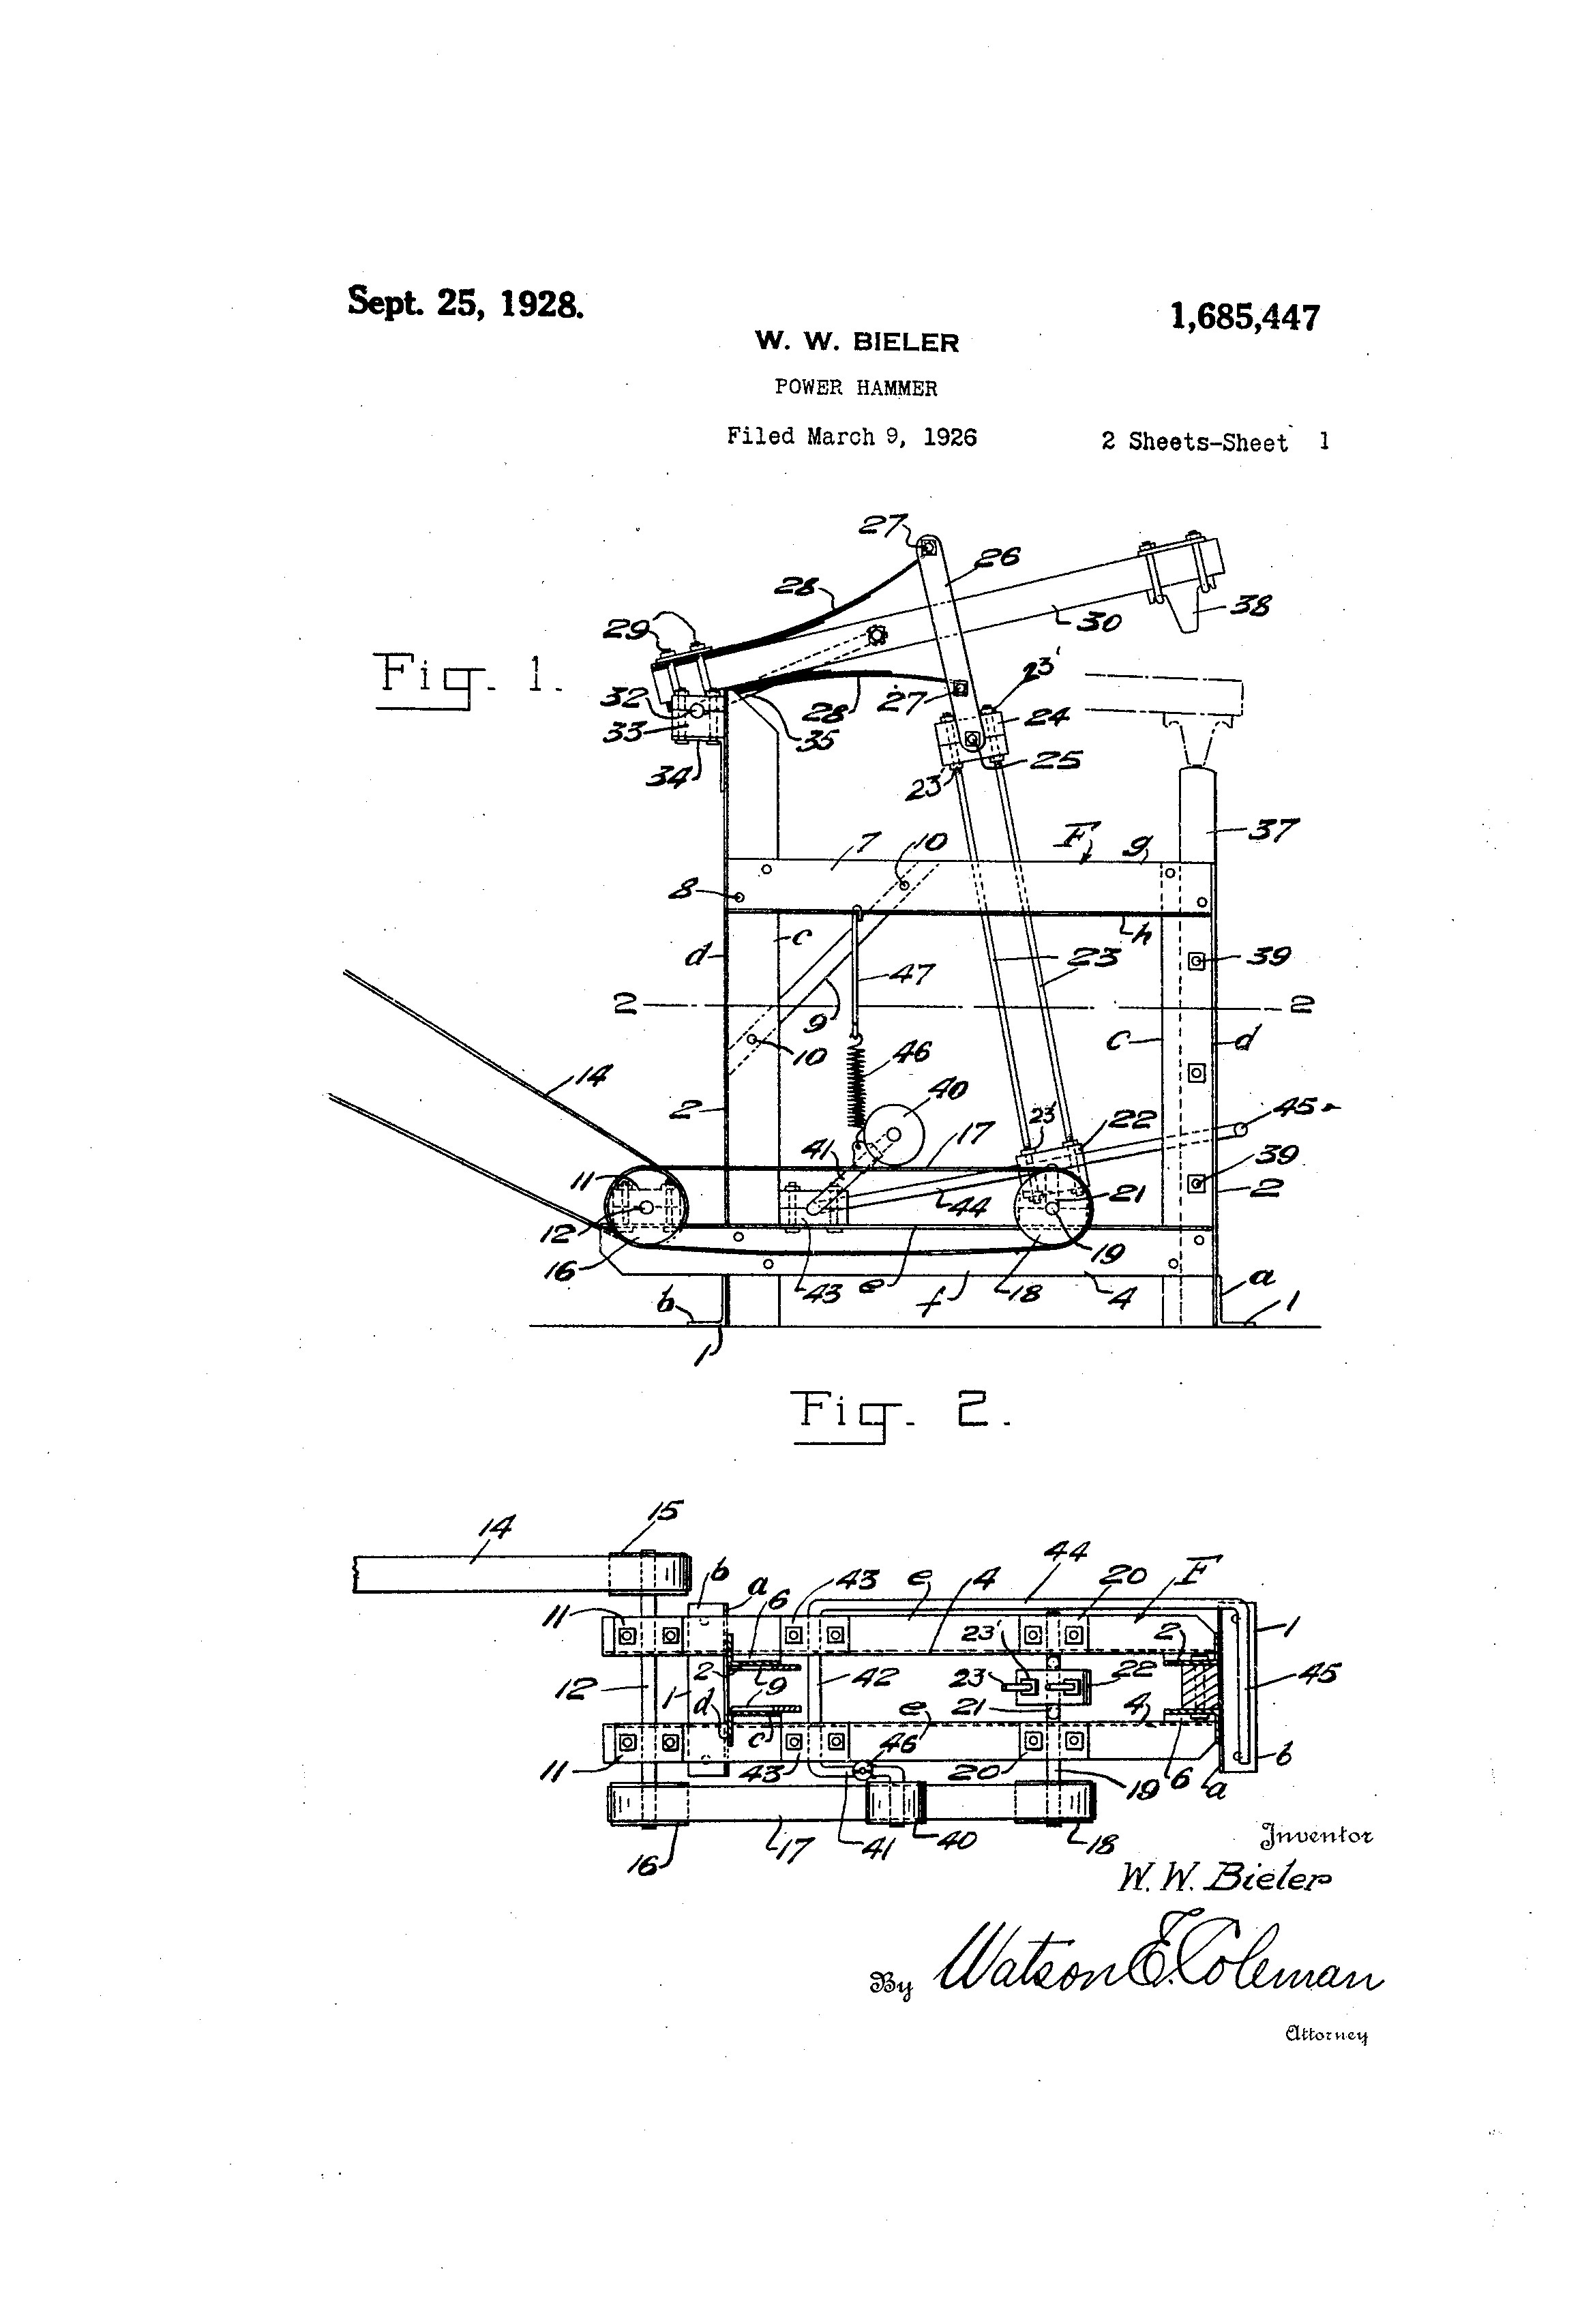 Leaf Spring Diagram Patent Us Power Hammer Google Patents Of Leaf Spring Diagram